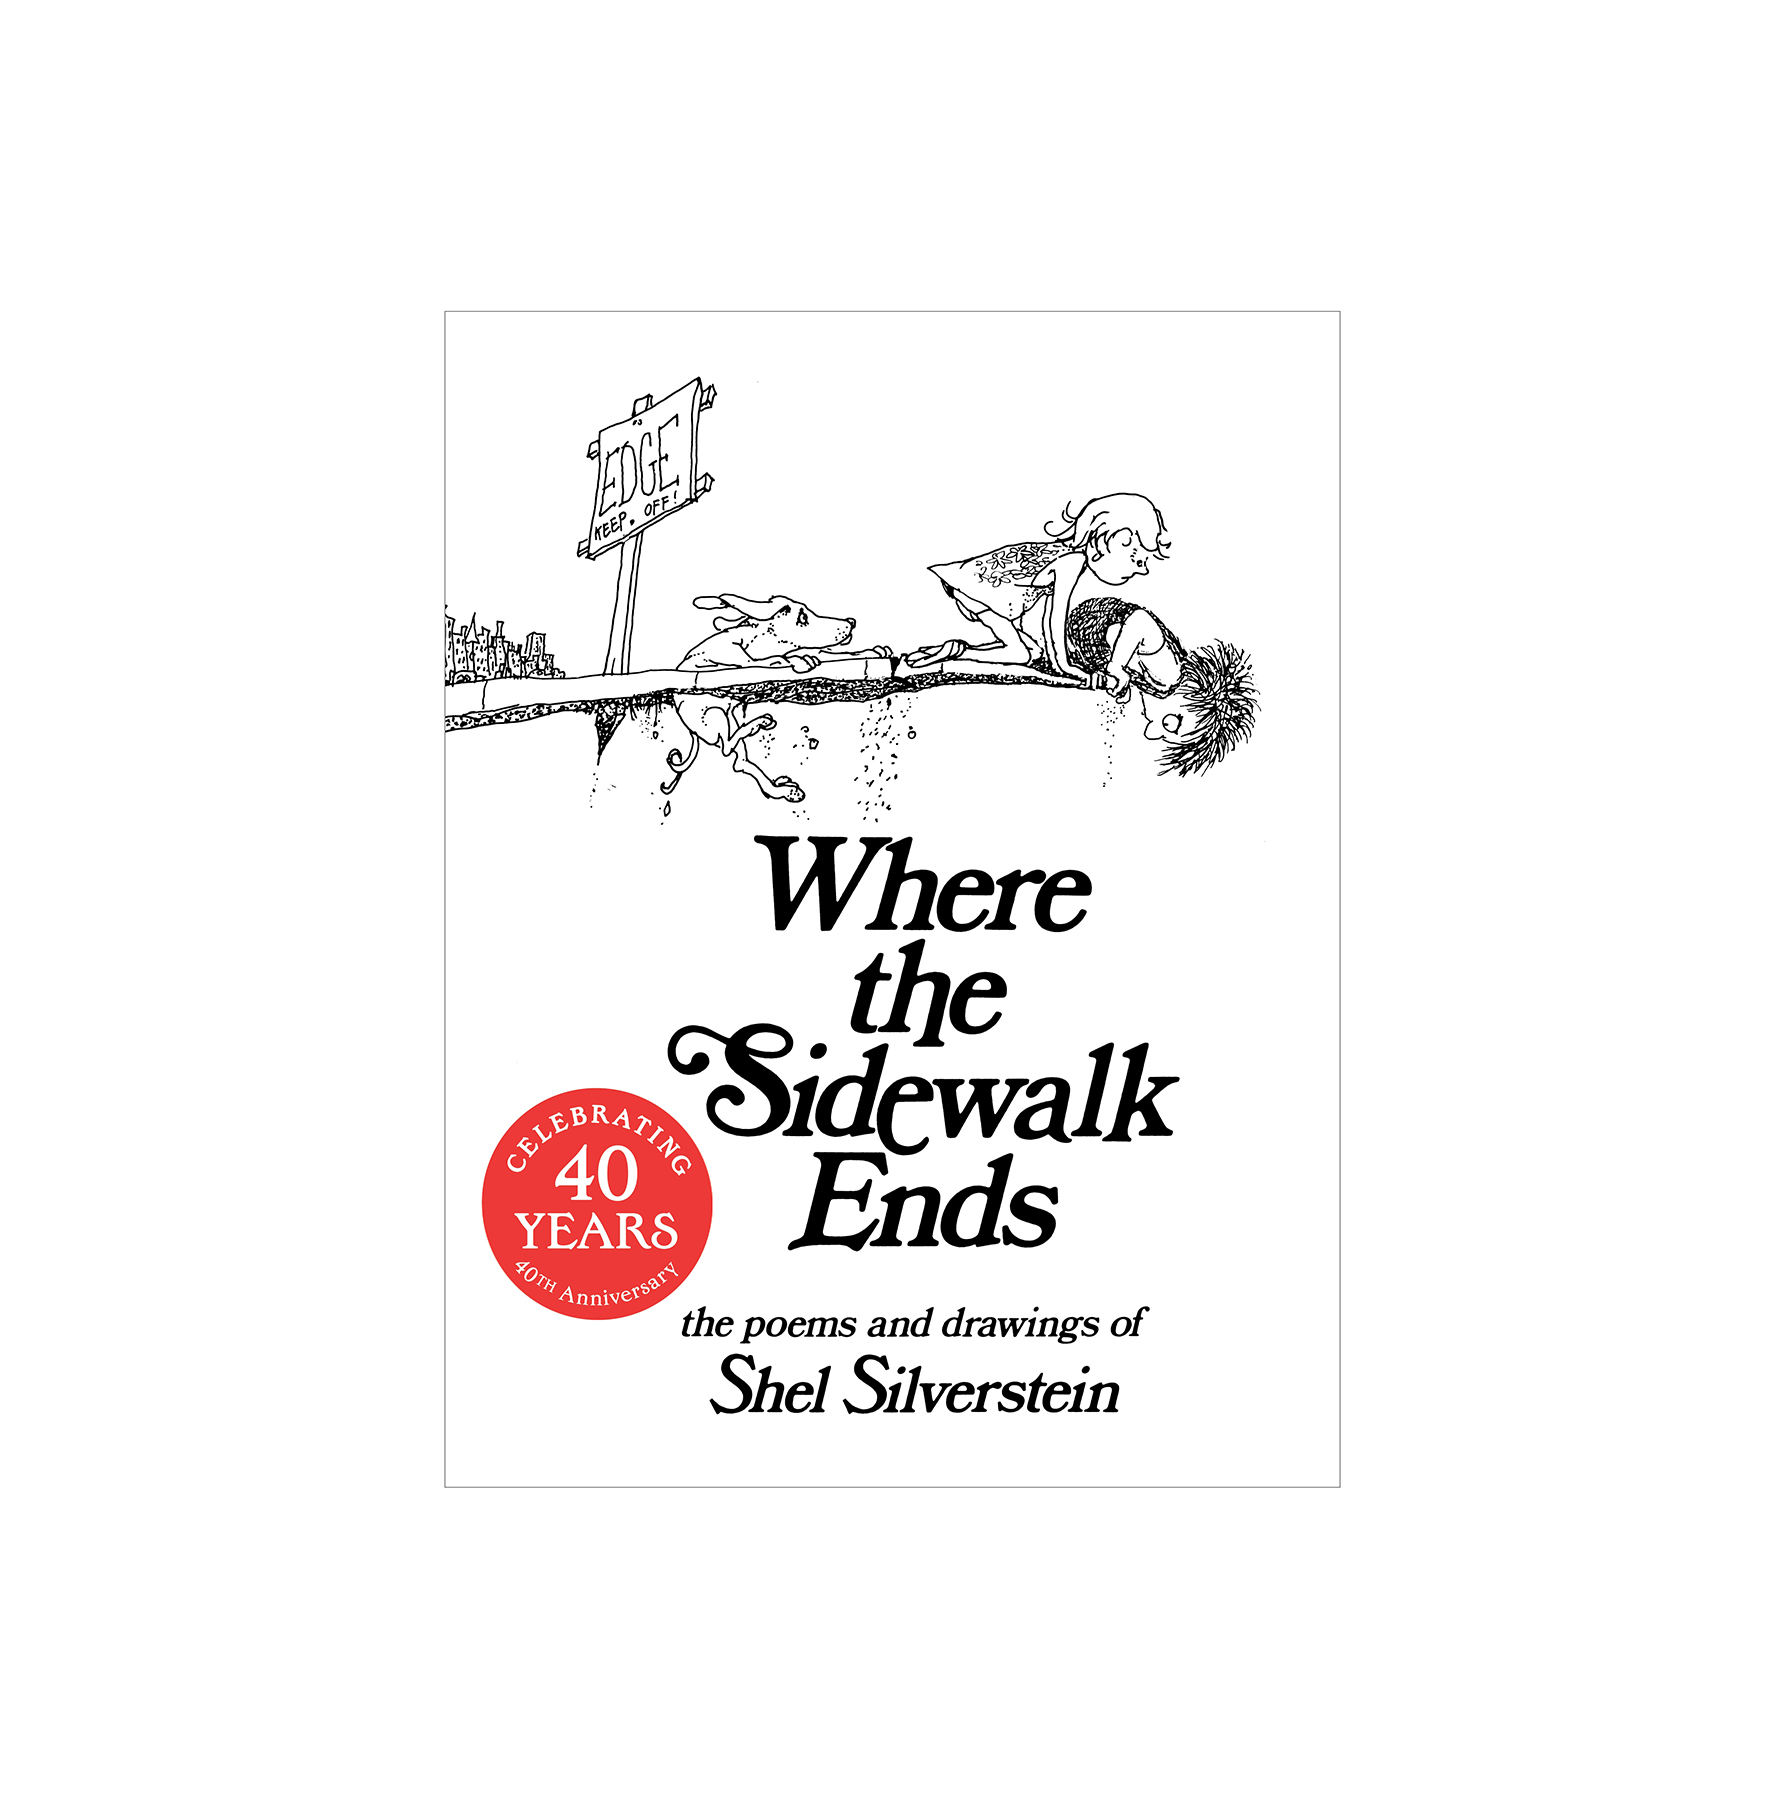 Where The Sidewalk Ends, by Shel Silverstein